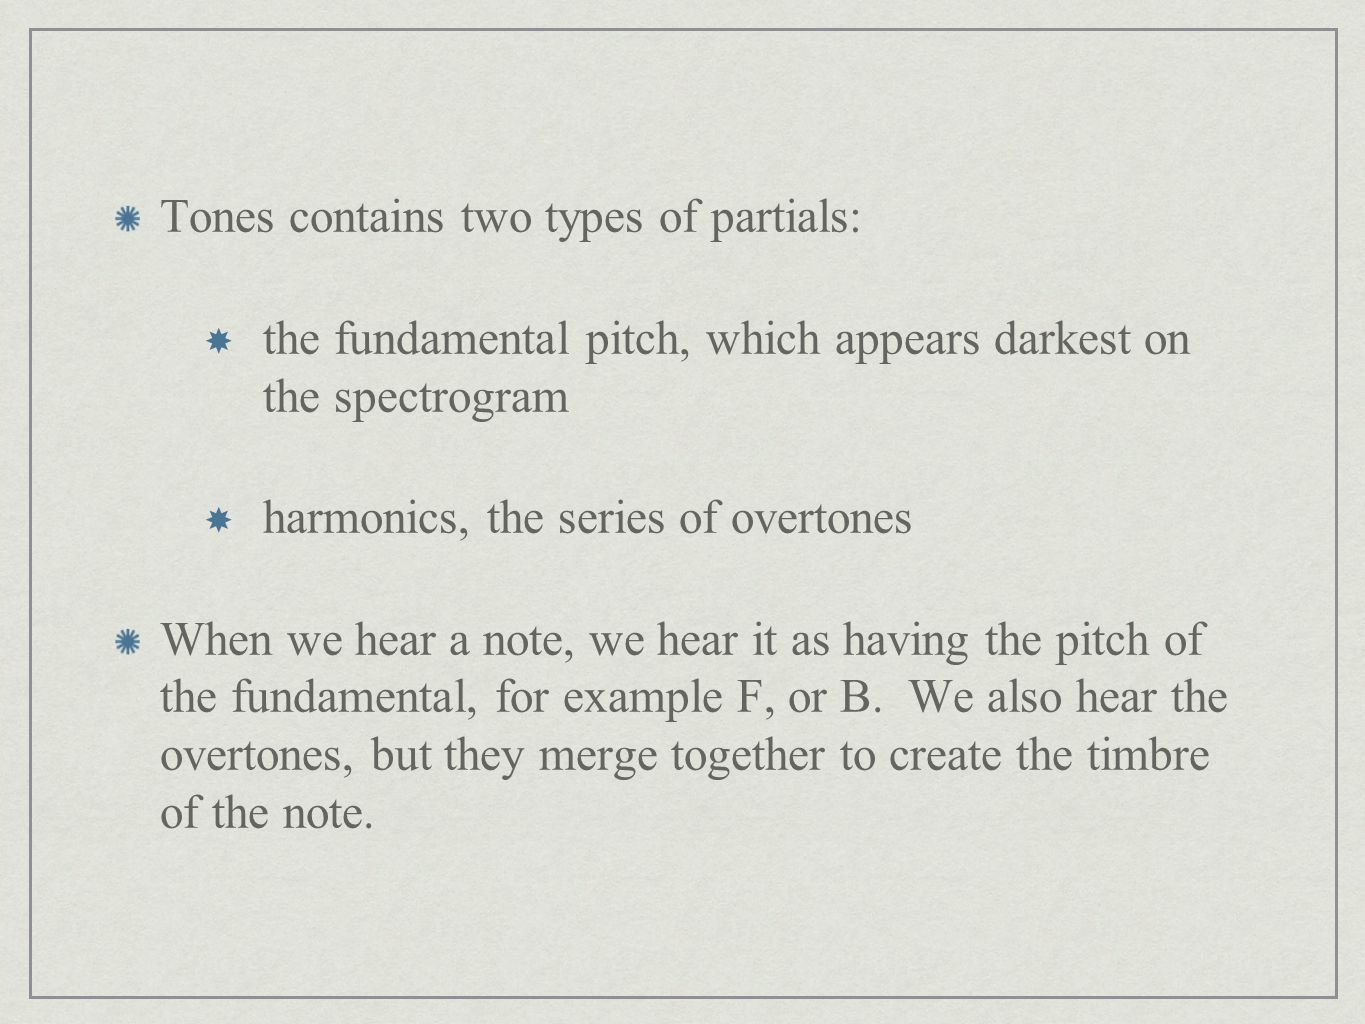 Tones contains two types of partials:  the fundamental pitch, which appears darkest on the spectrogram  harmonics, the series of overtones When we hear a note, we hear it as having the pitch of the fundamental, for example F, or B.